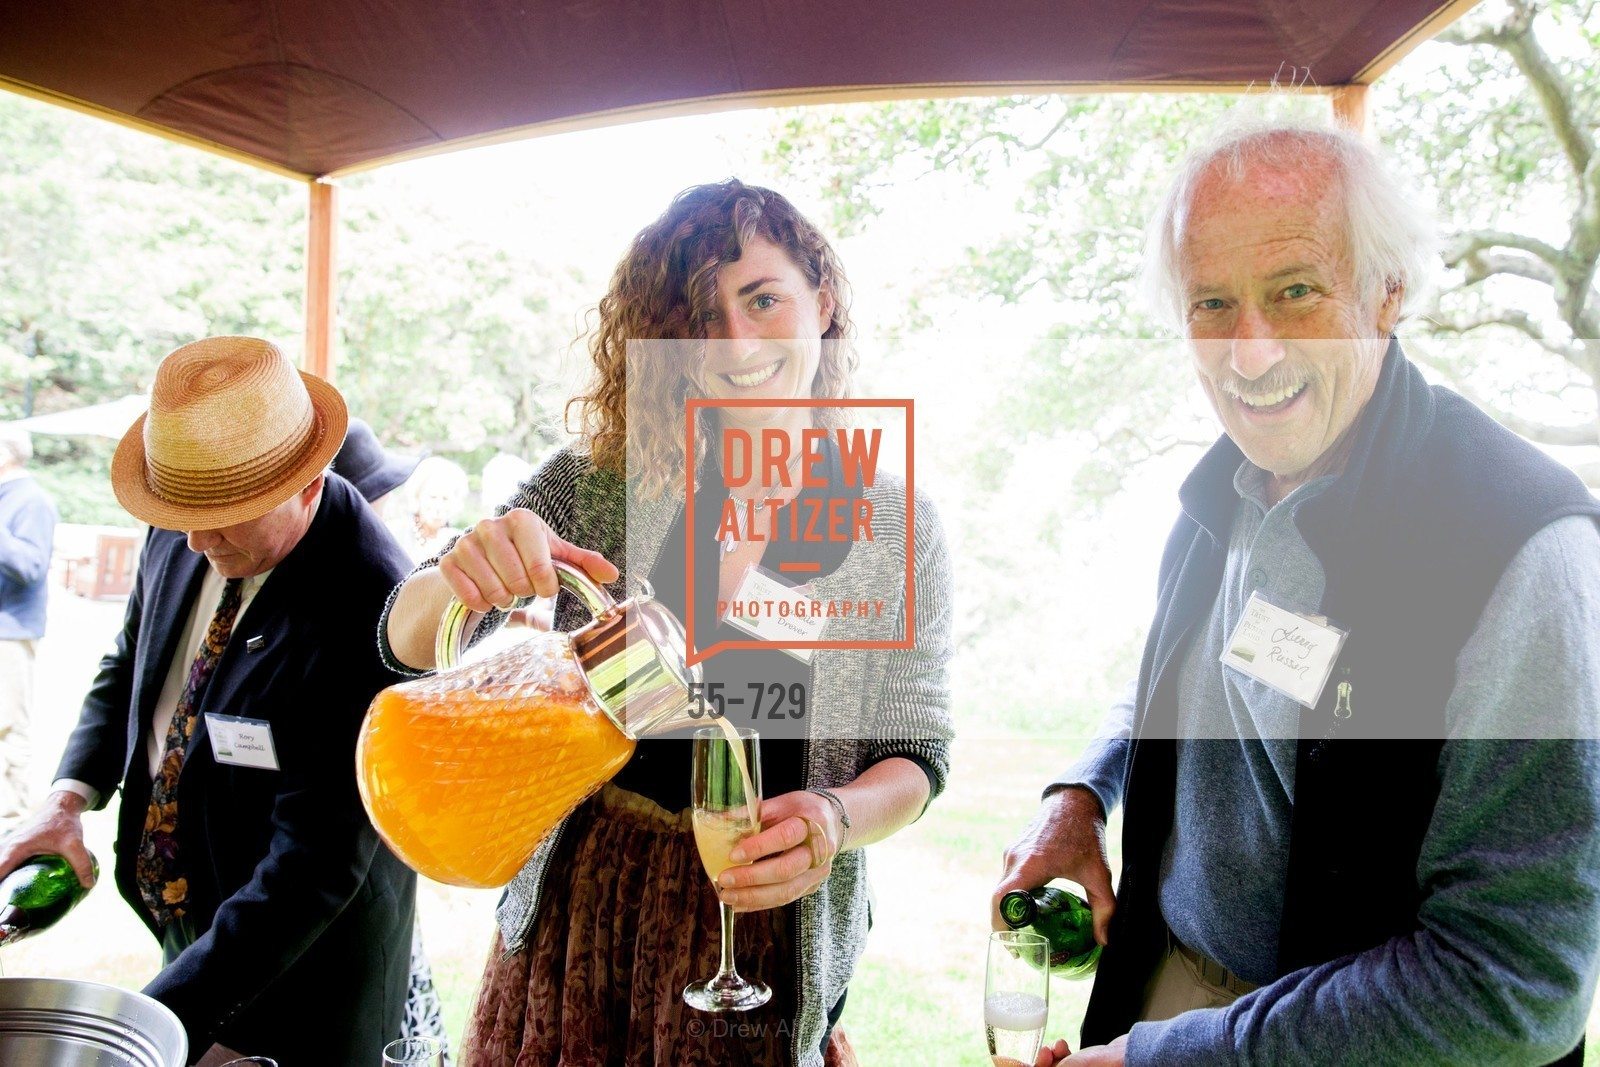 Rory Campbell, Isabelle Drever, Jerry Riessen, THE TRUST FOR PUBLIC LAND Luncheon Hosted by THE DREVER FAMILY FOUNDATION, US, May 14th, 2015,Drew Altizer, Drew Altizer Photography, full-service agency, private events, San Francisco photographer, photographer california